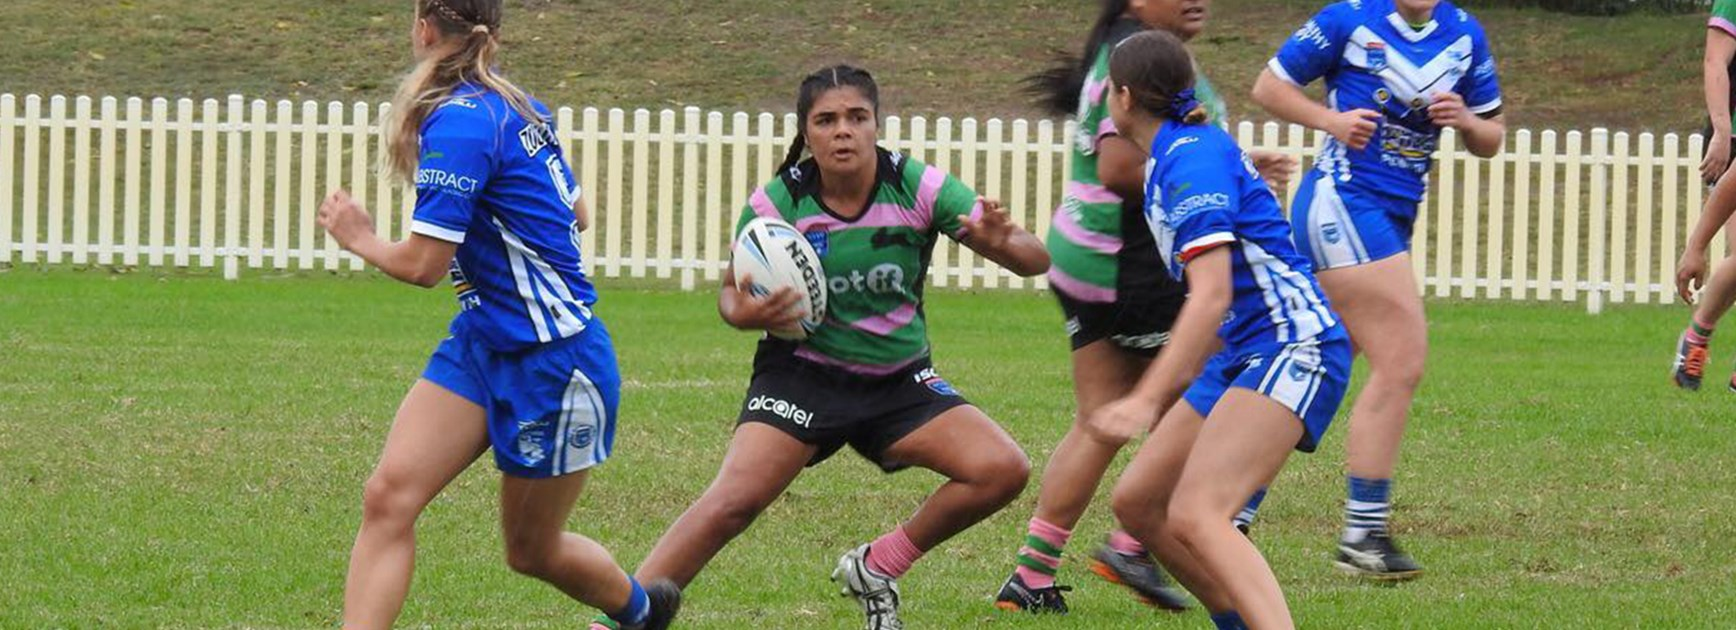 Forward dominance leads Rabbitohs Women to big victory